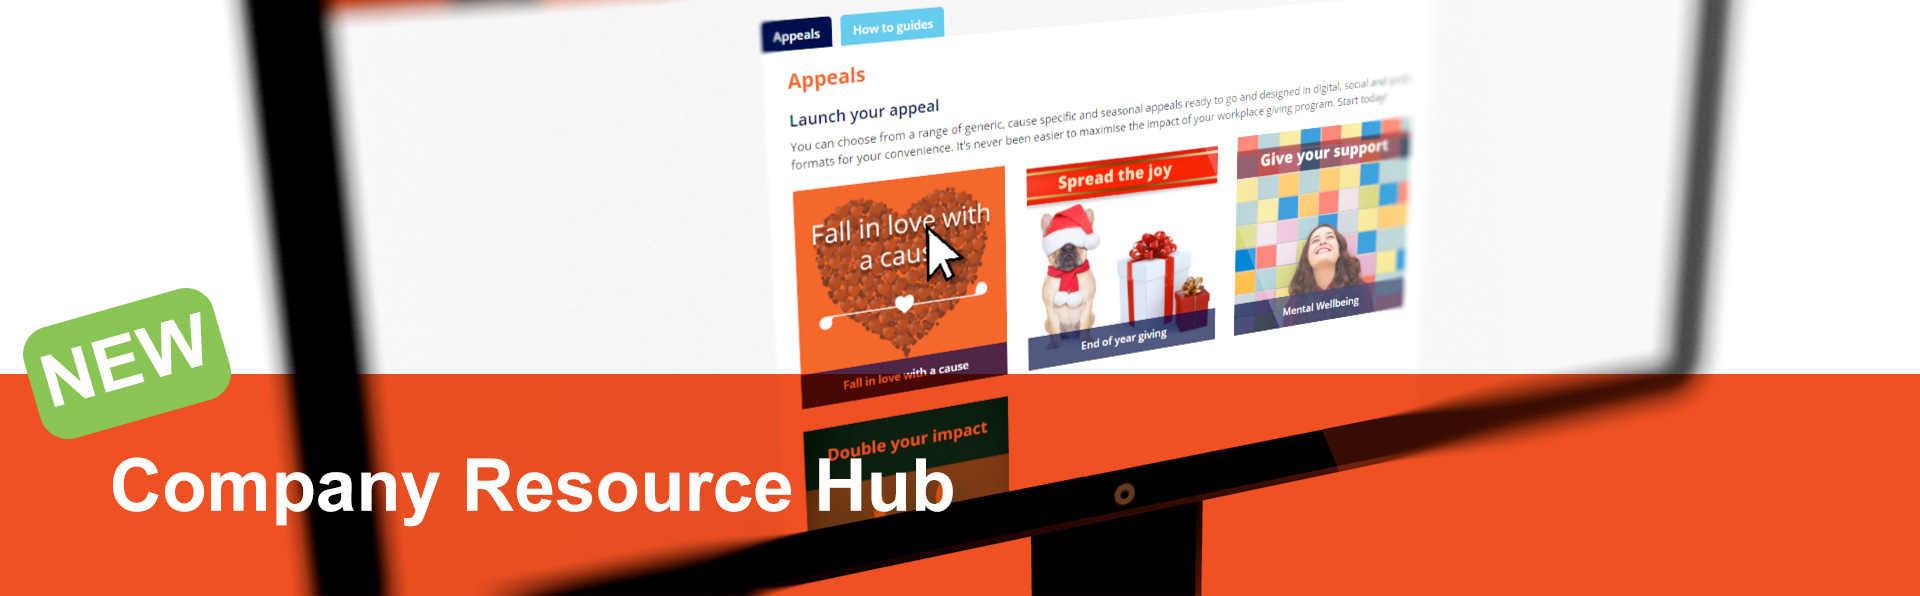 0916-company-resource-hub-tab-banner